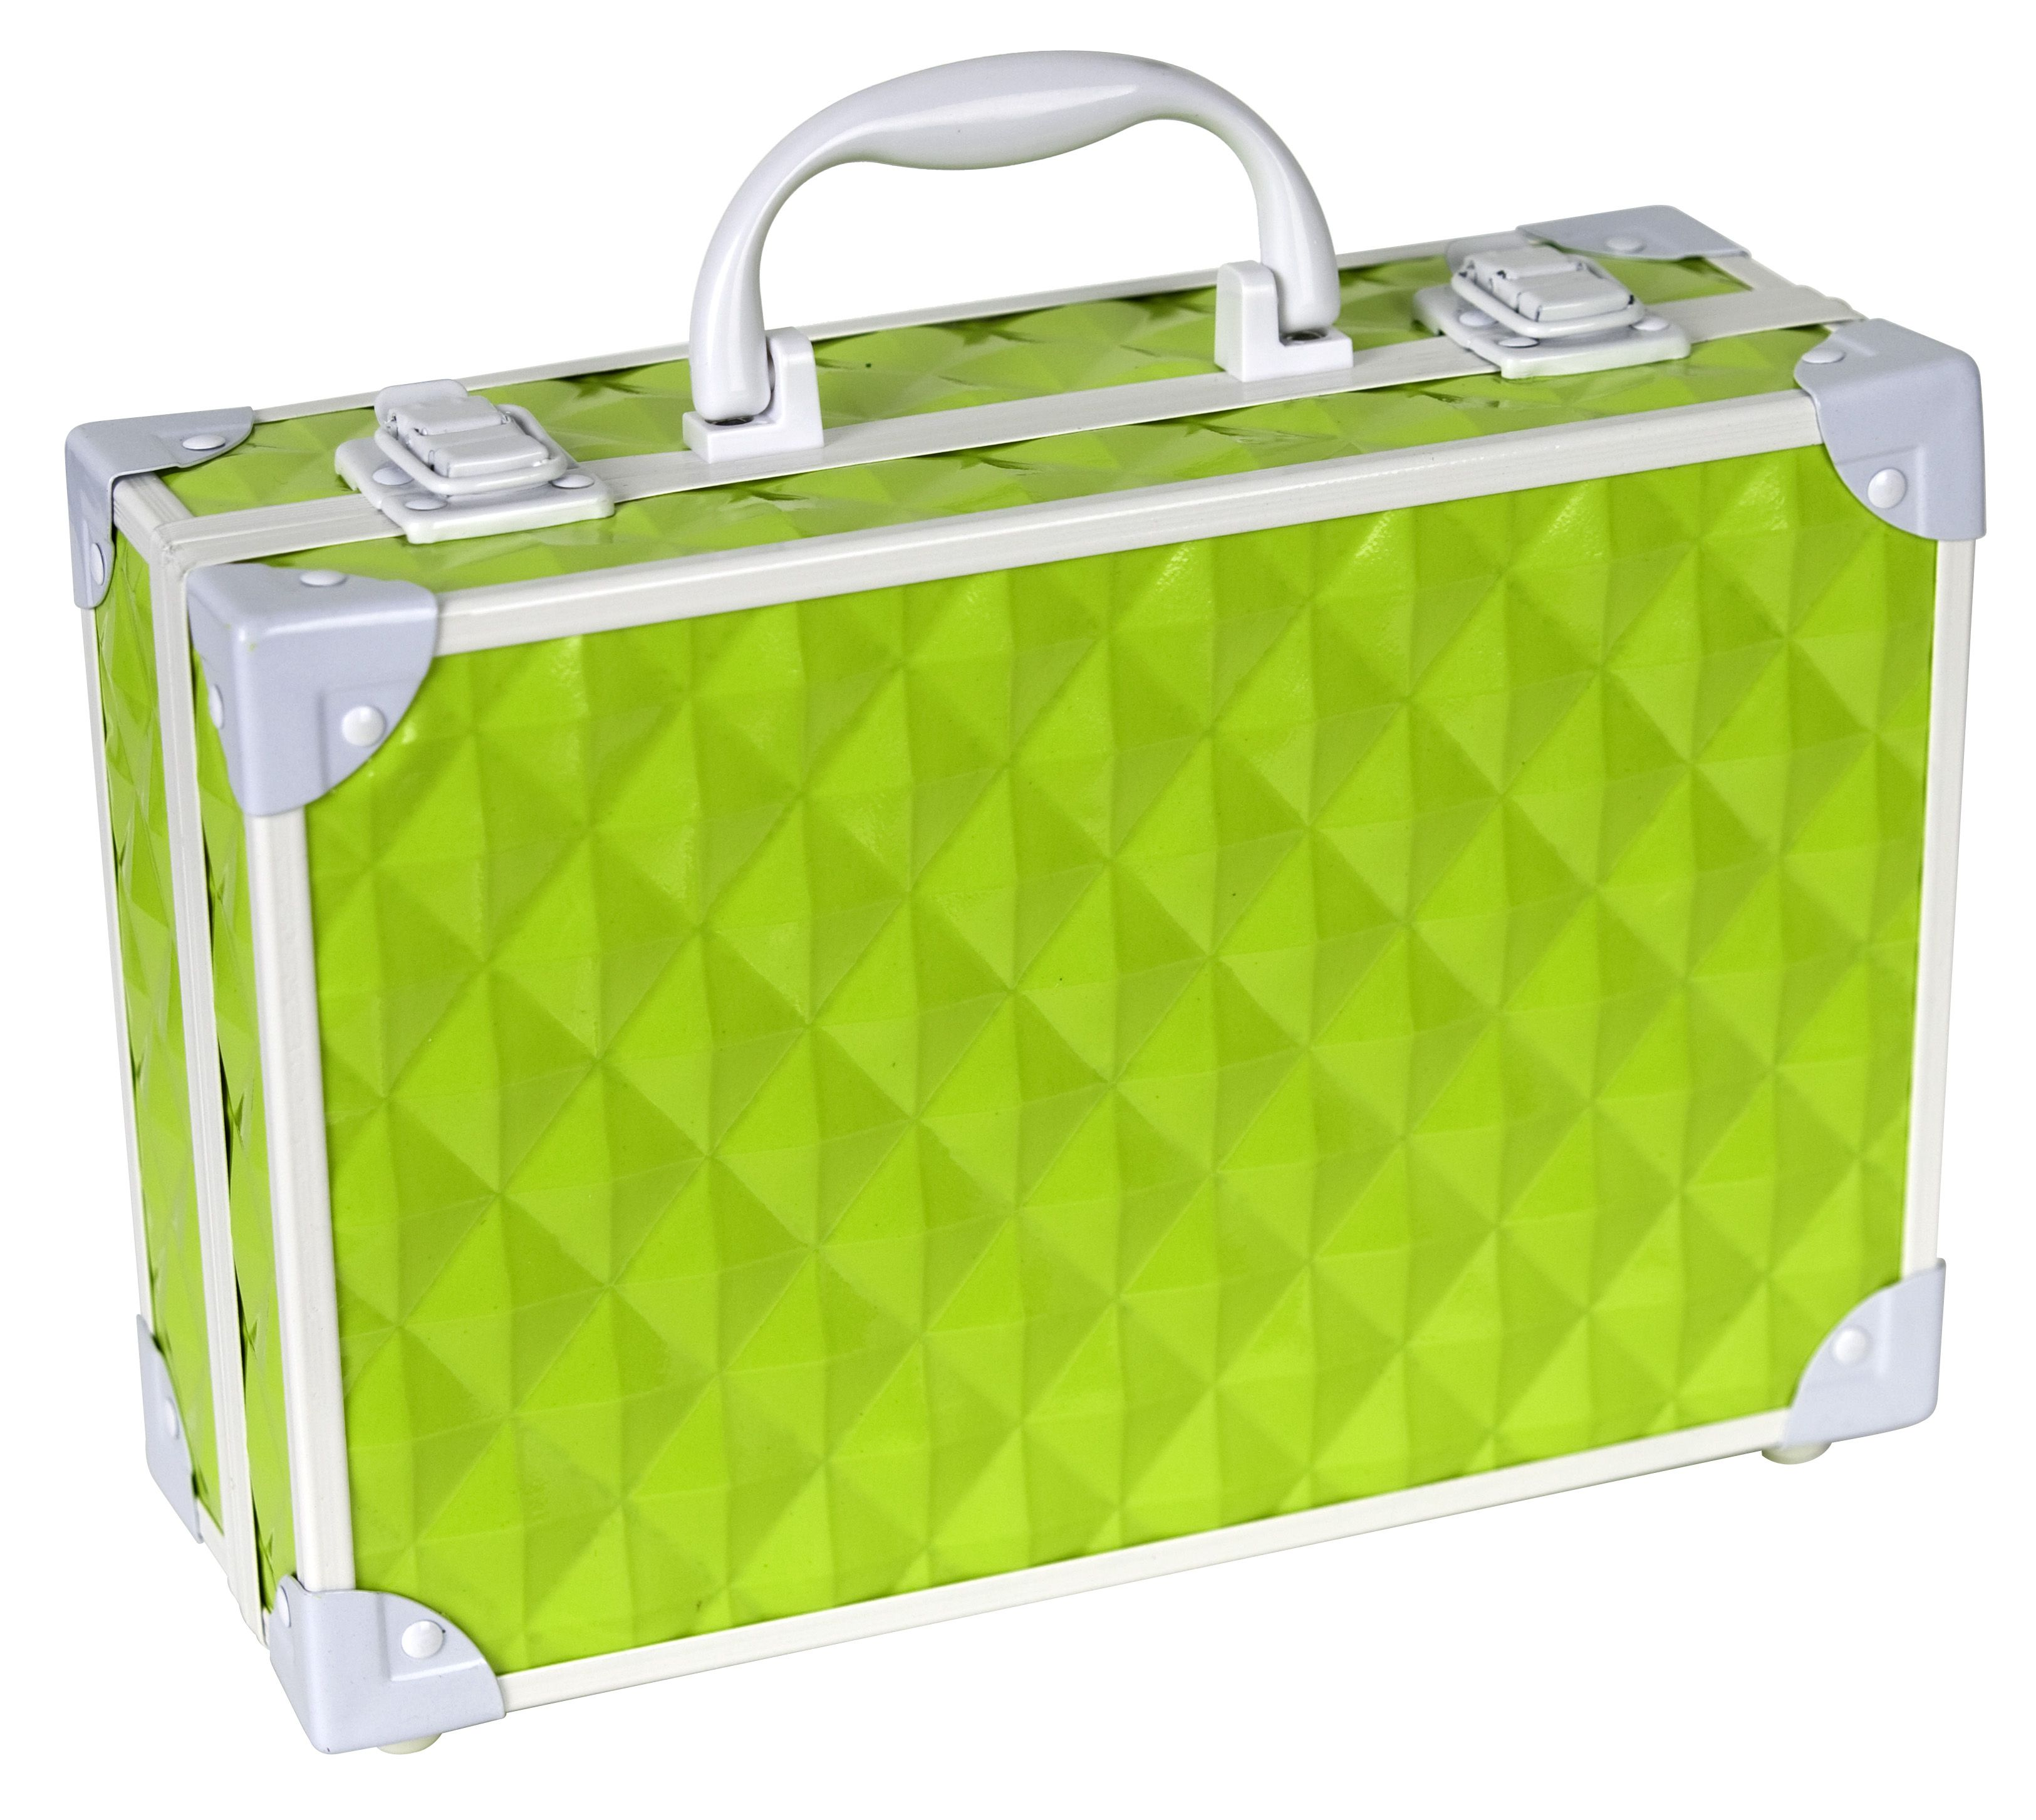 Our Power Generator case in green! Filled with cosmetics